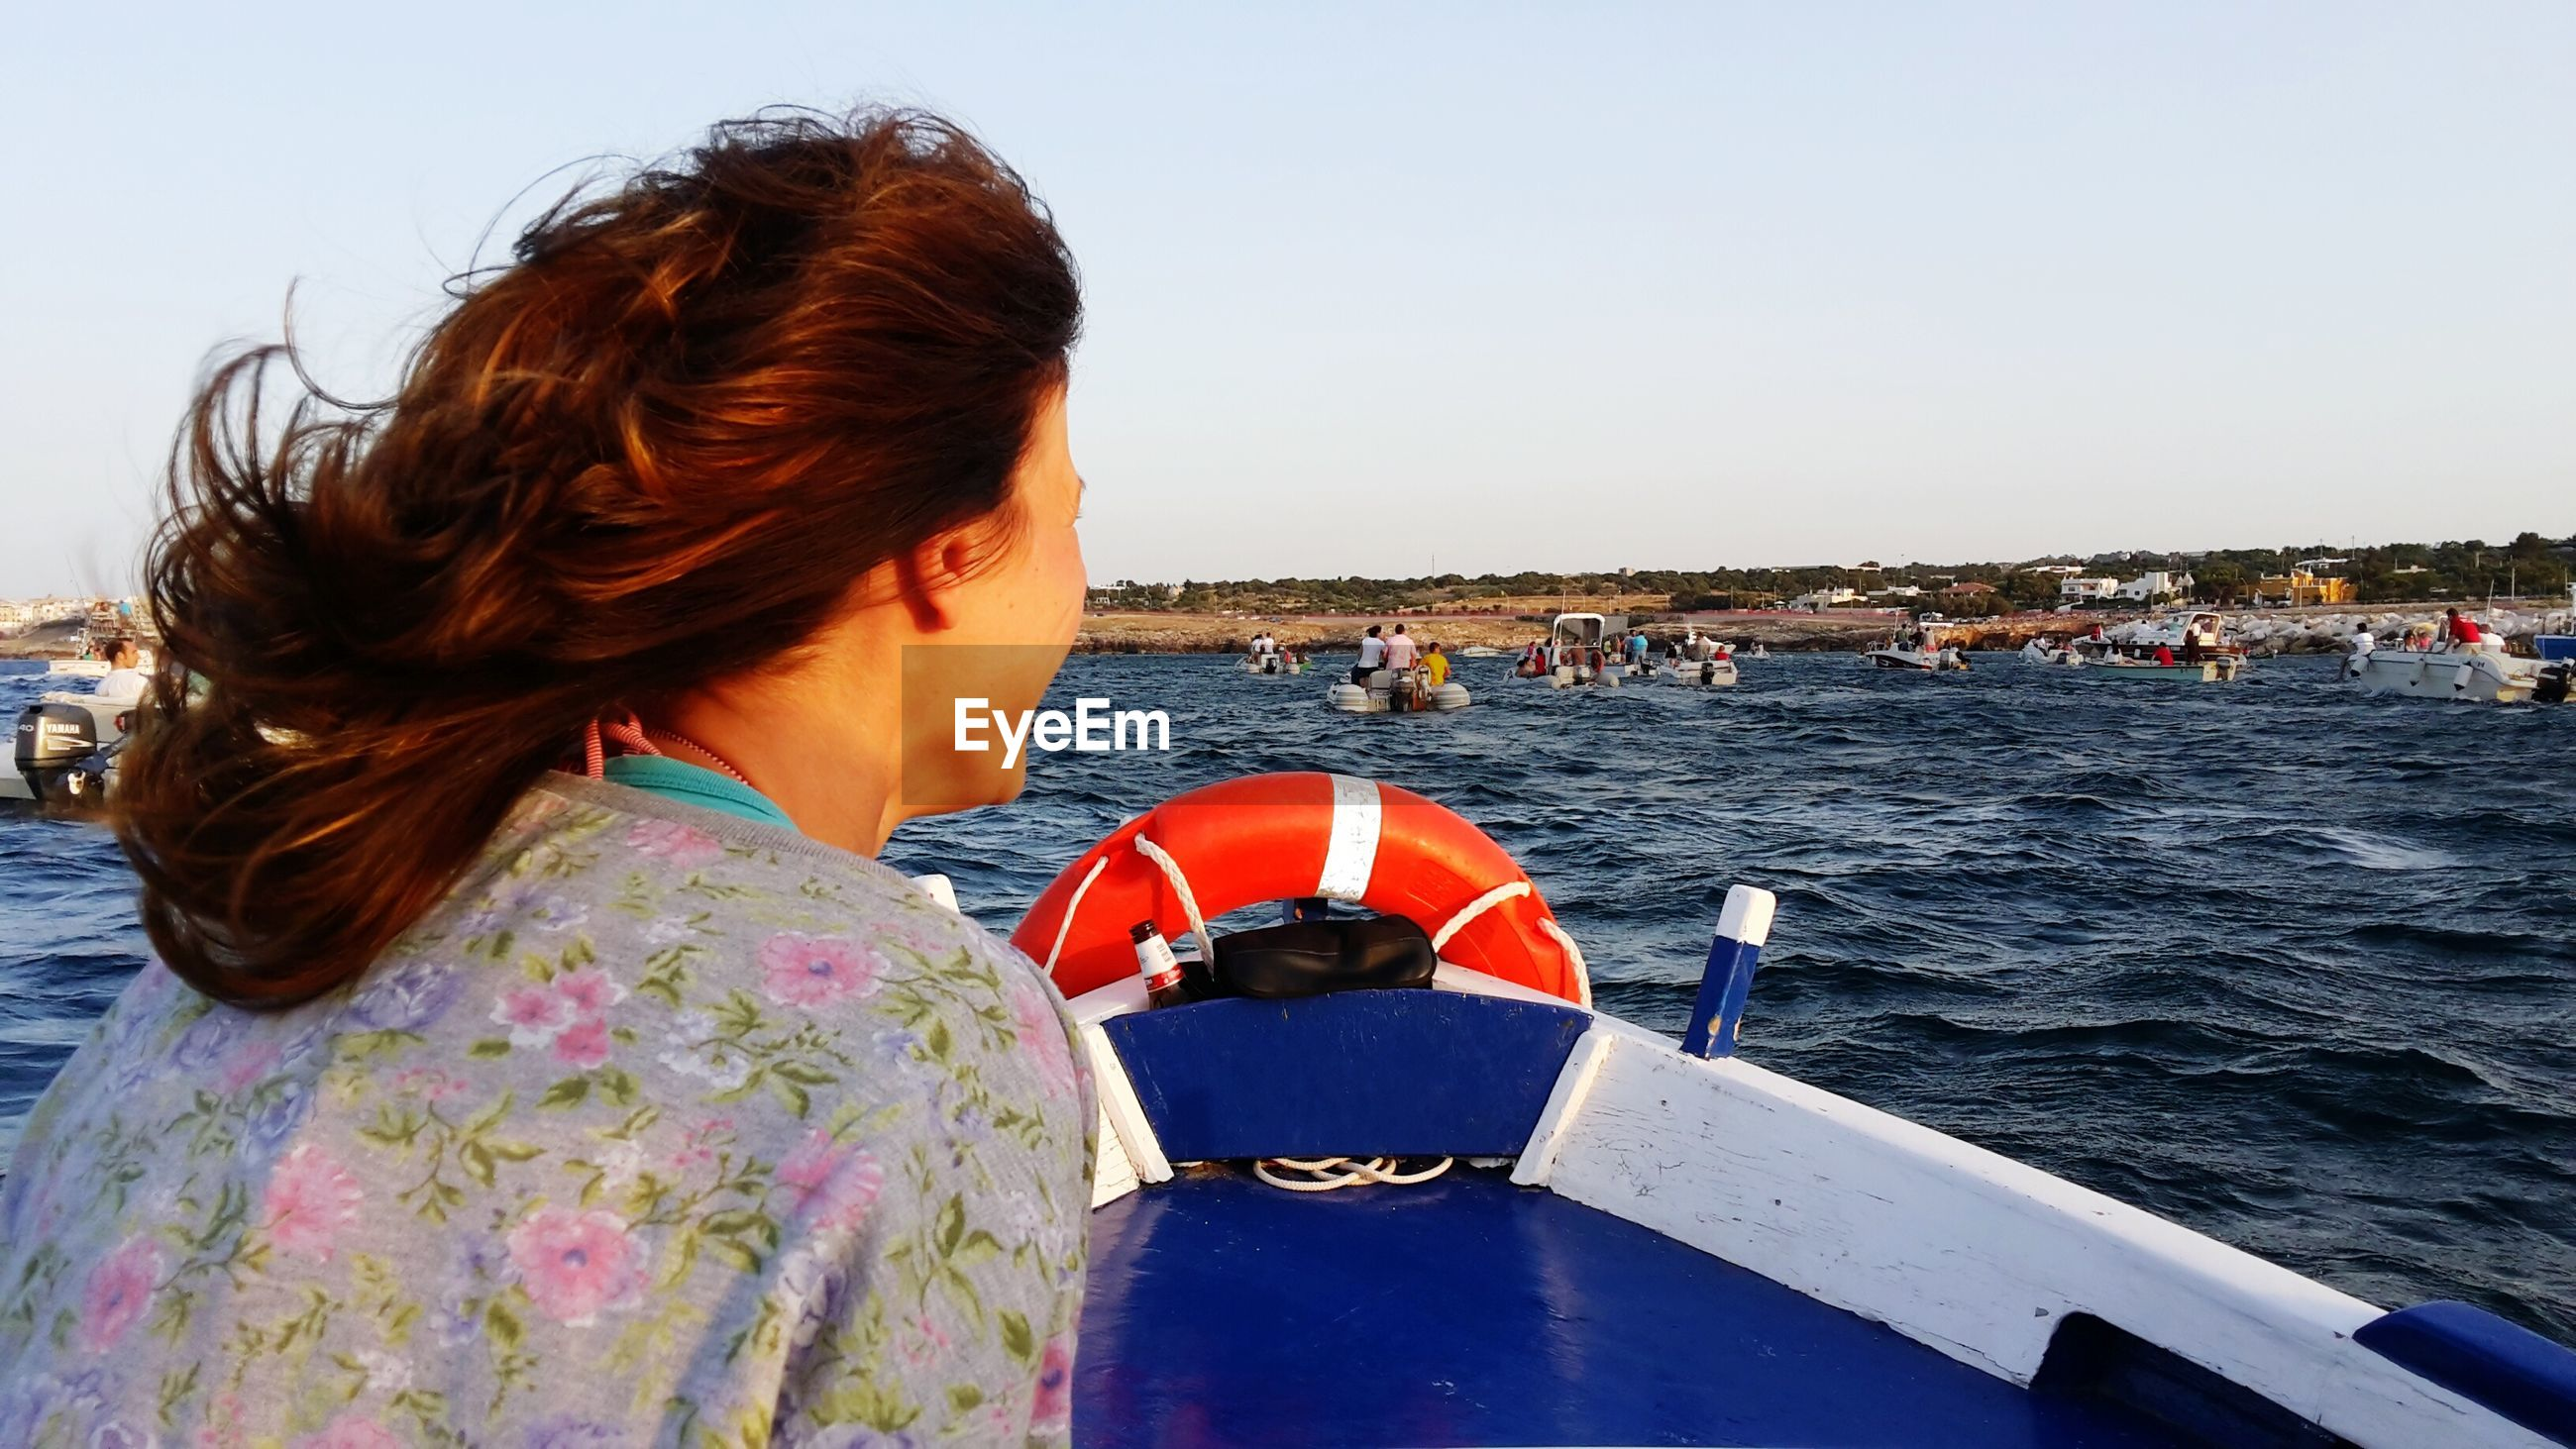 water, lifestyles, sea, leisure activity, person, young adult, clear sky, transportation, young women, nautical vessel, casual clothing, river, long hair, headshot, mode of transport, sunglasses, sky, standing